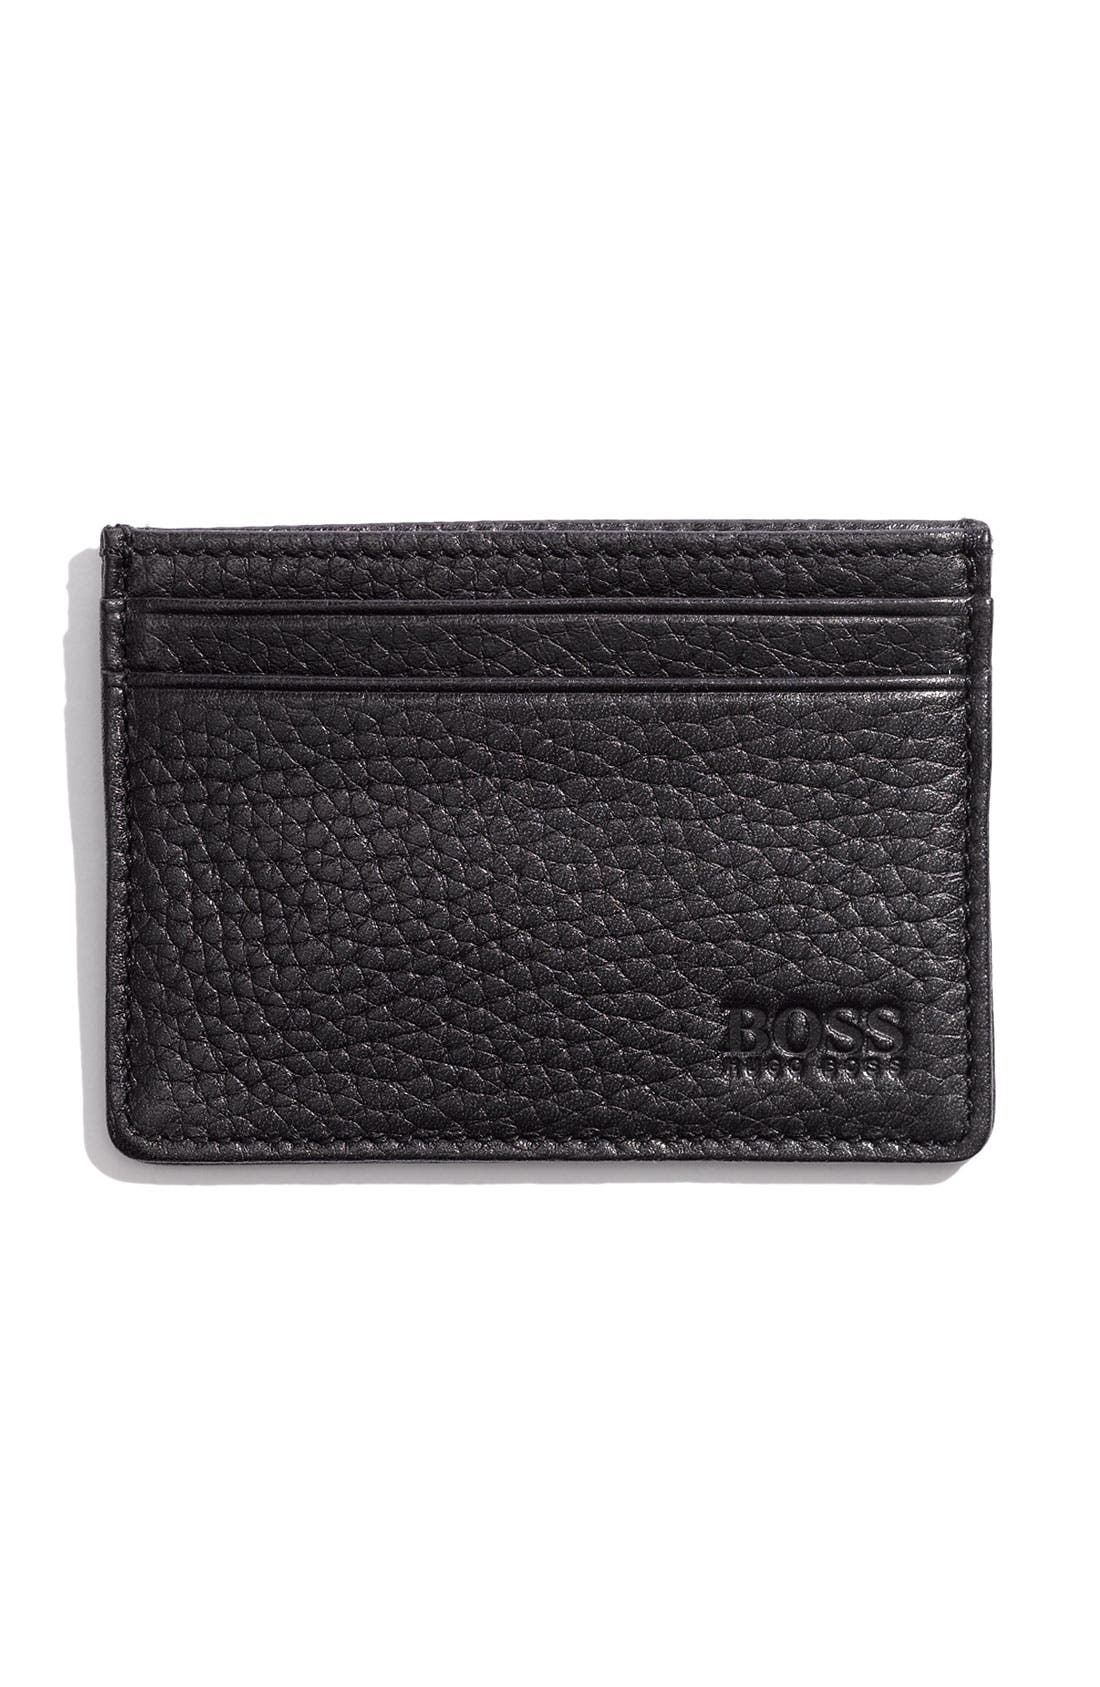 Main Image - BOSS HUGO BOSS 'Bradenton' Leather Card Case